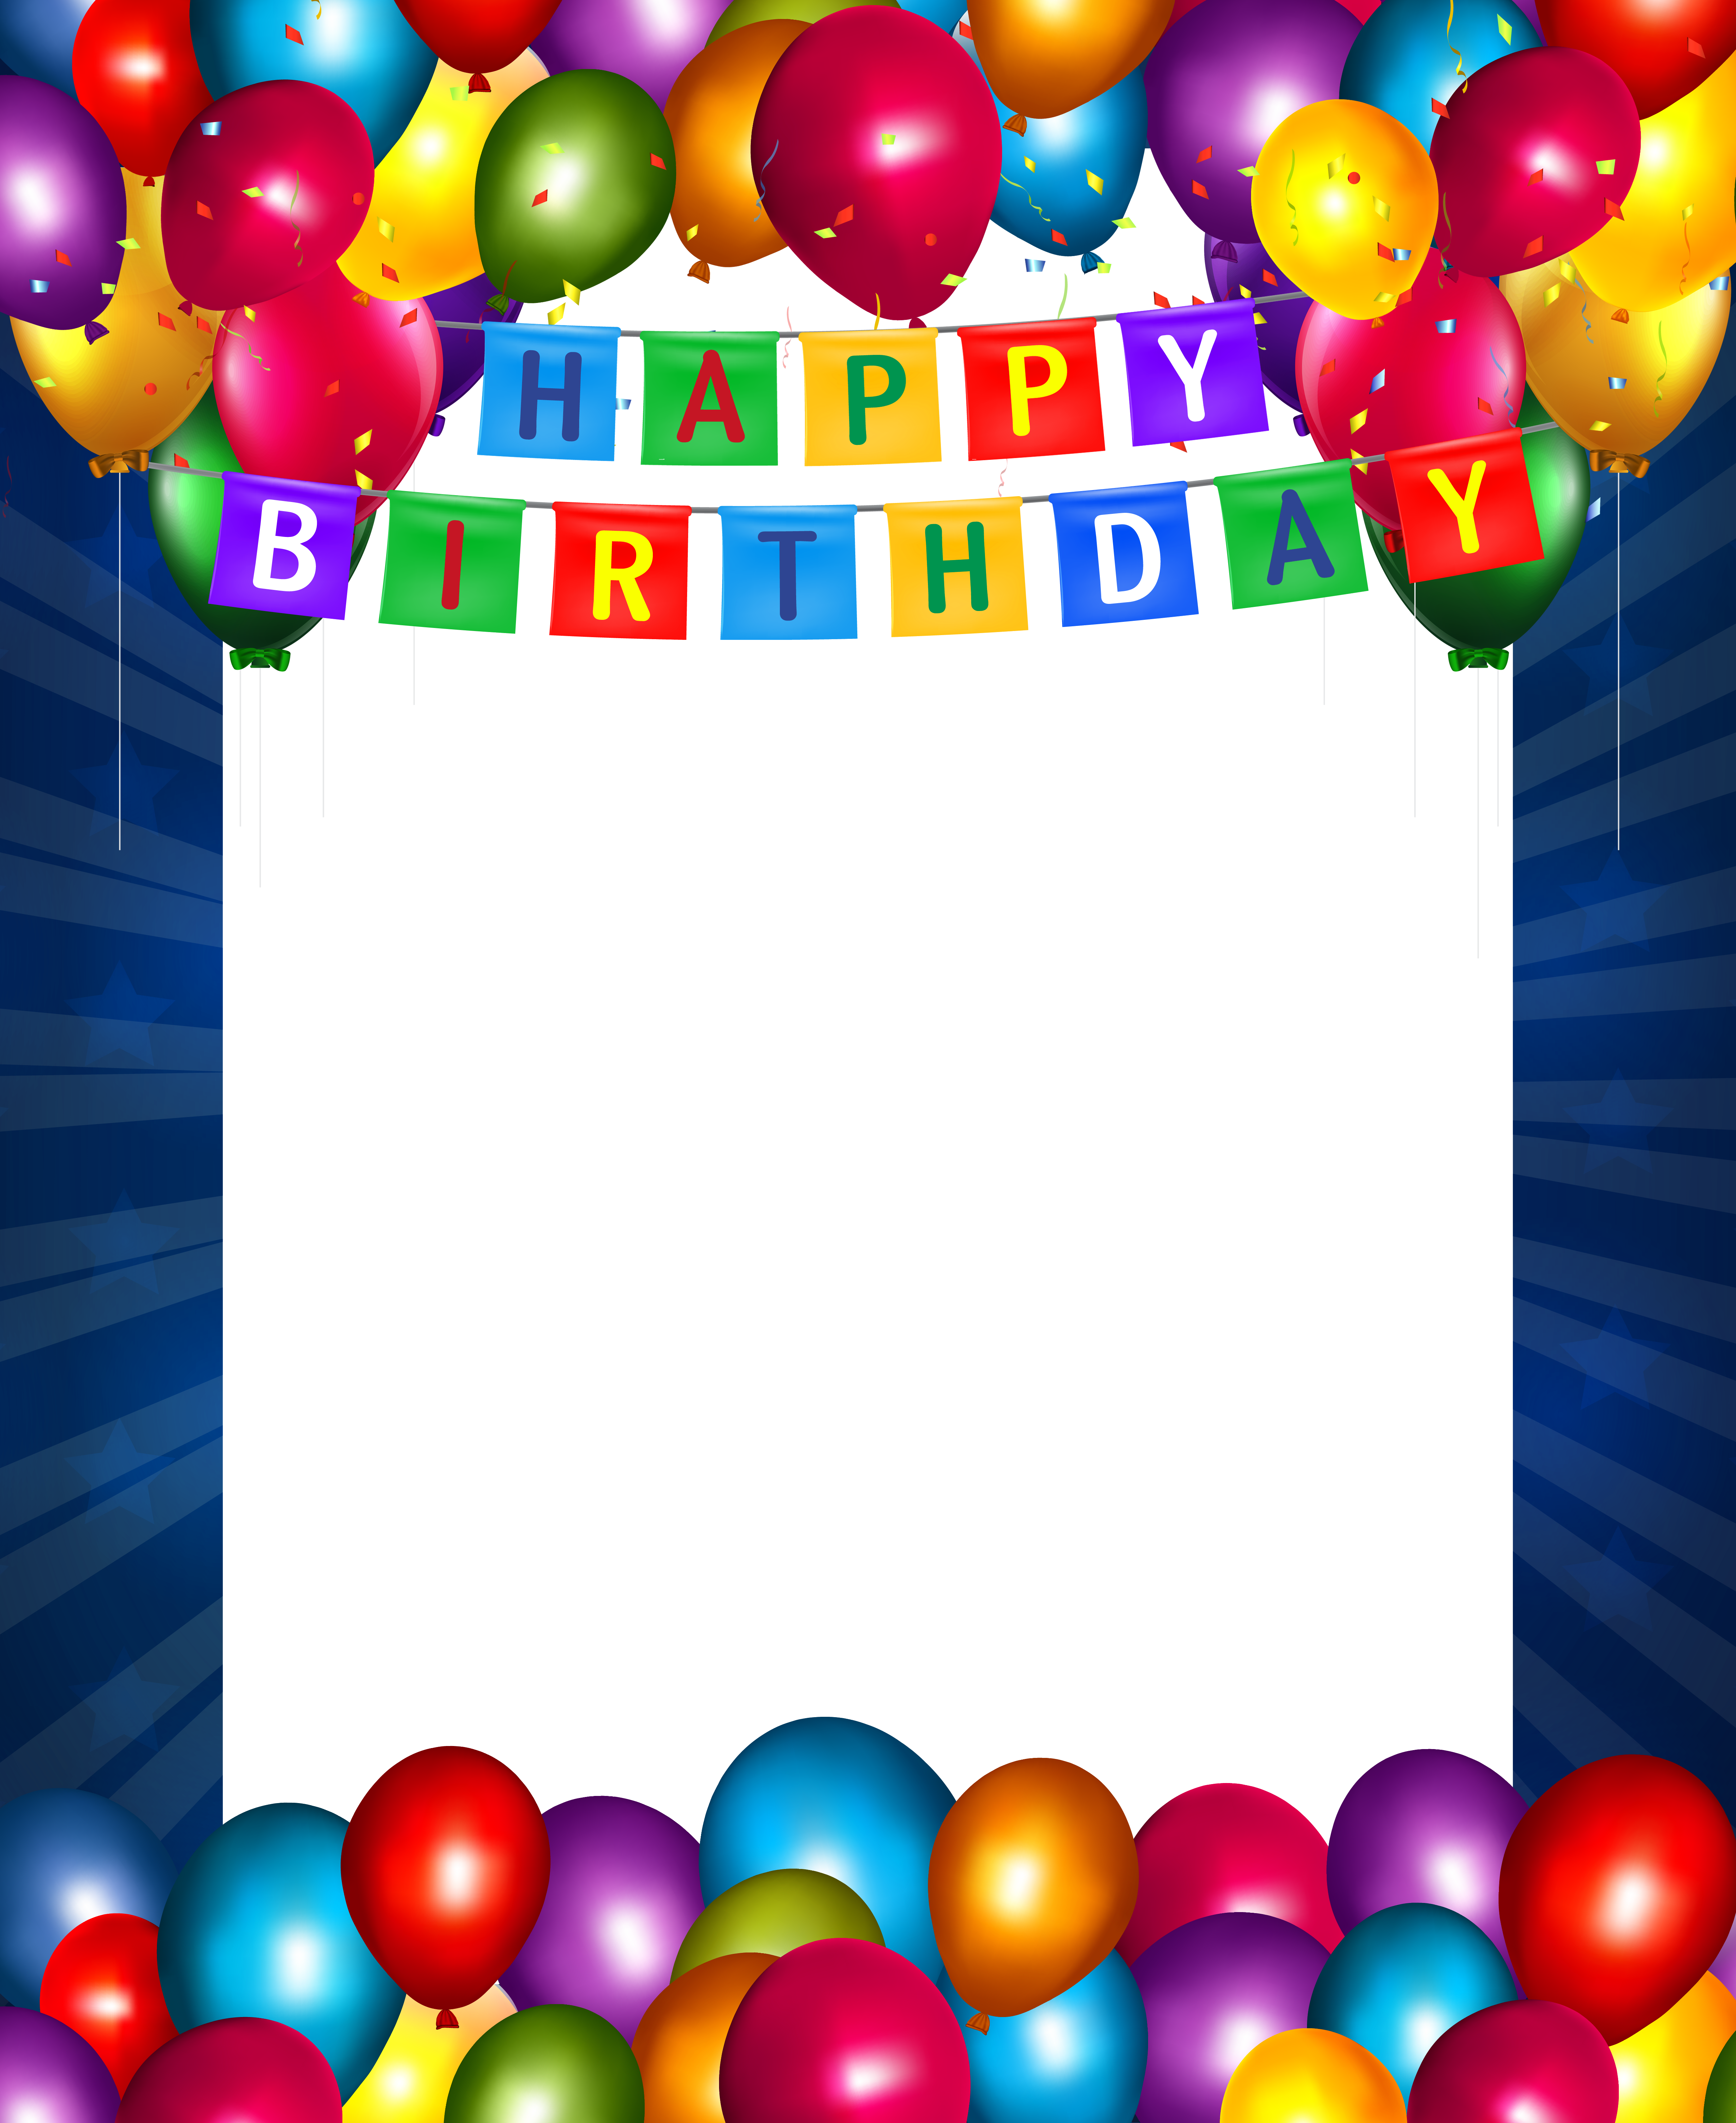 Frame clipart happy birthday. Pin by aoril on